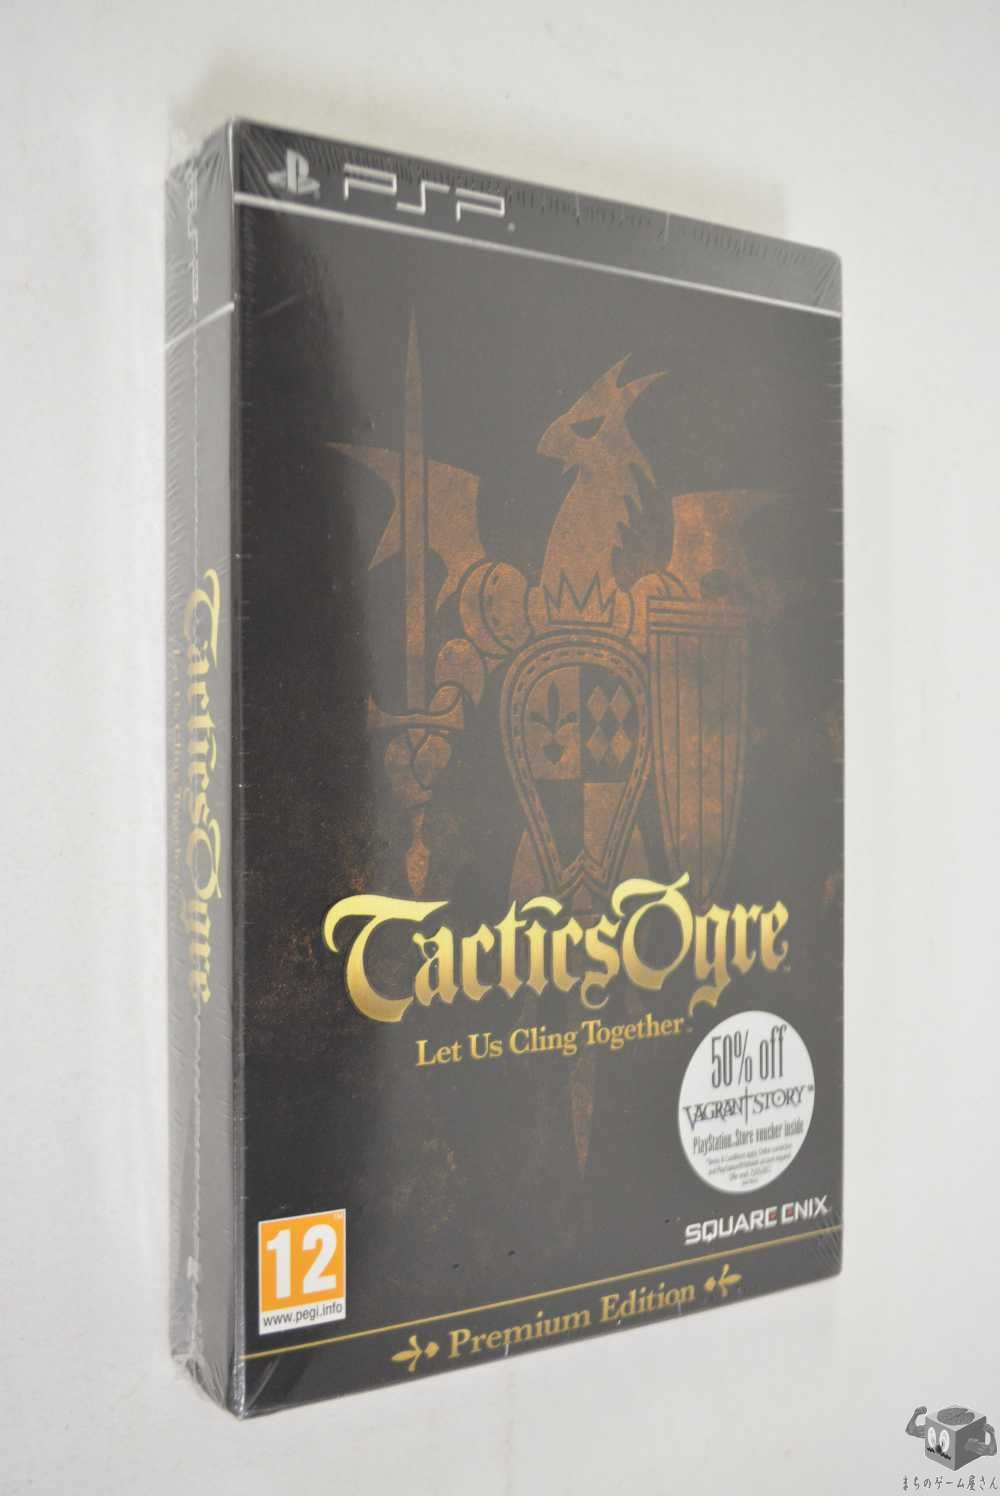 [PSP]  Tactics Ogre: Let Us Cling Together Premium Edition English Version (NEW)